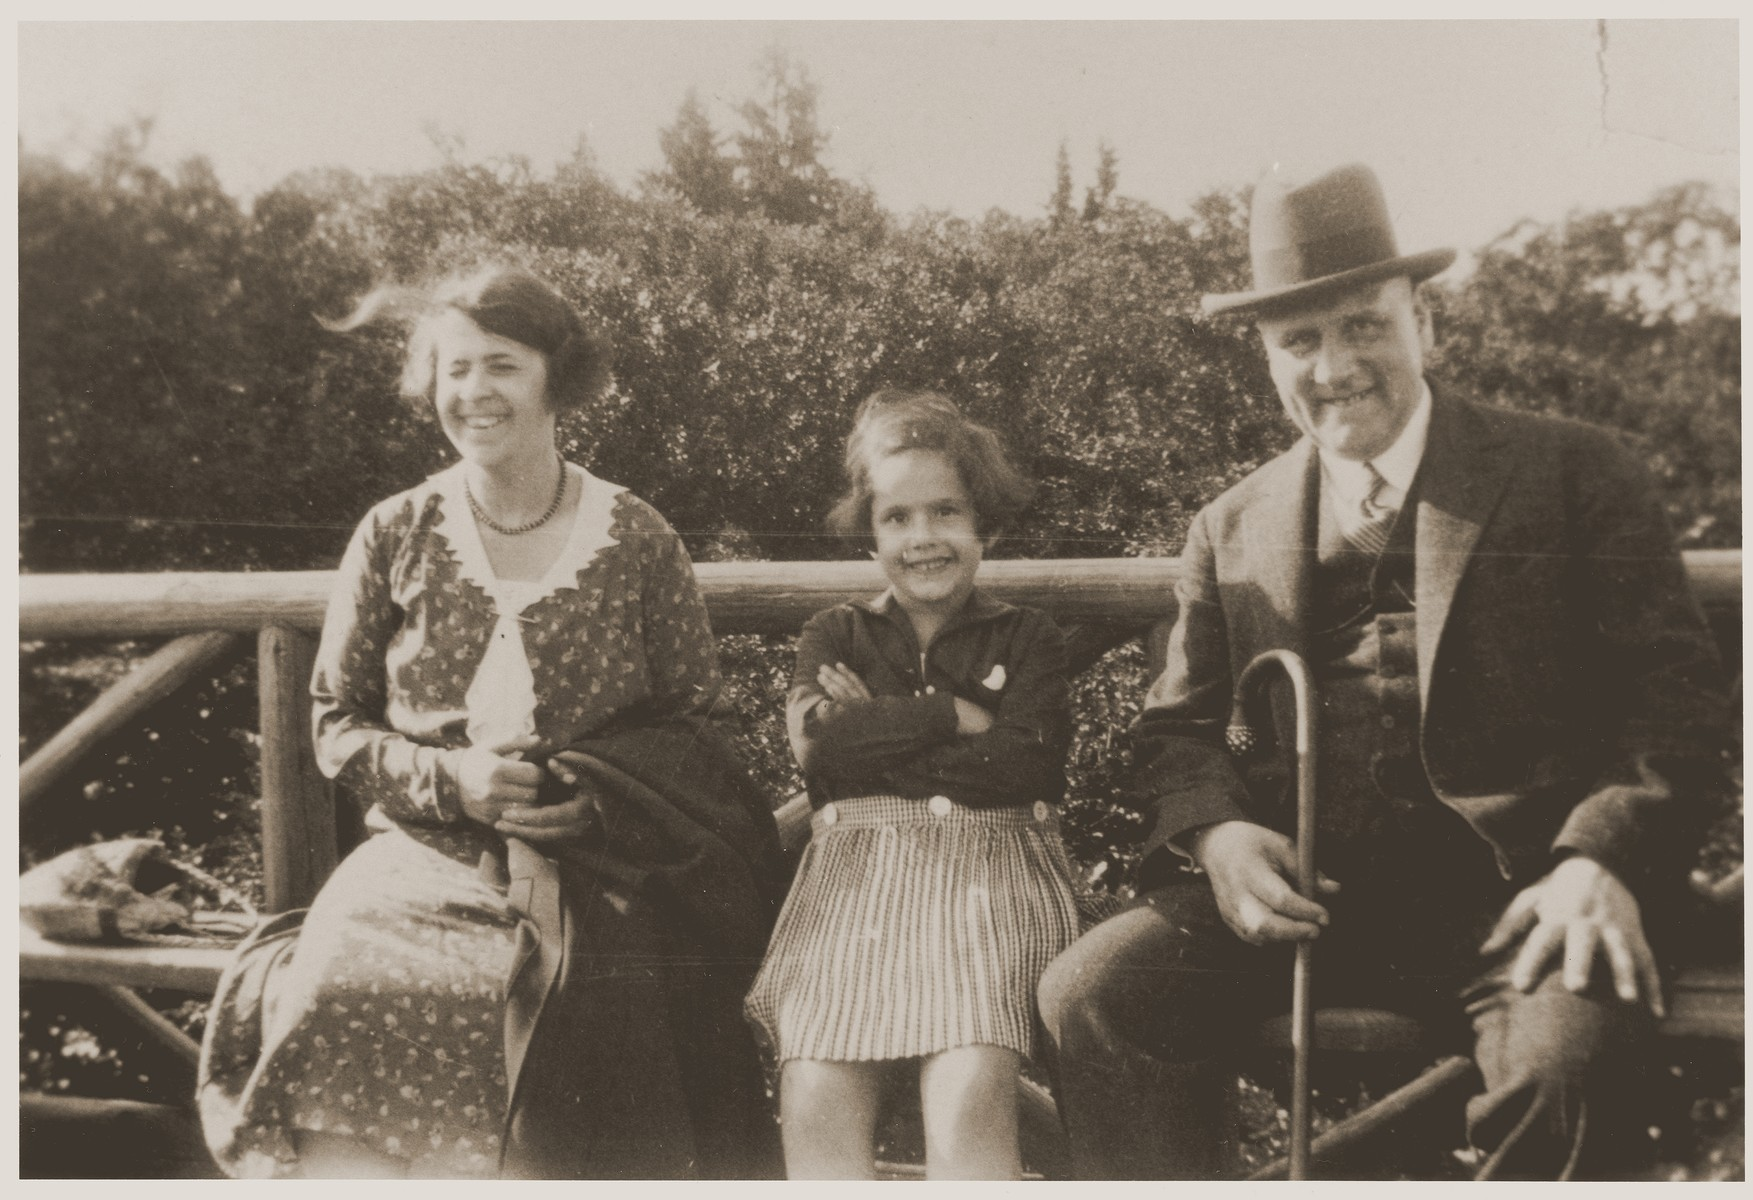 Lore Gotthelf poses with her parents, Gertud and Sigmund Gotthelf, on her father's 50th birthday.